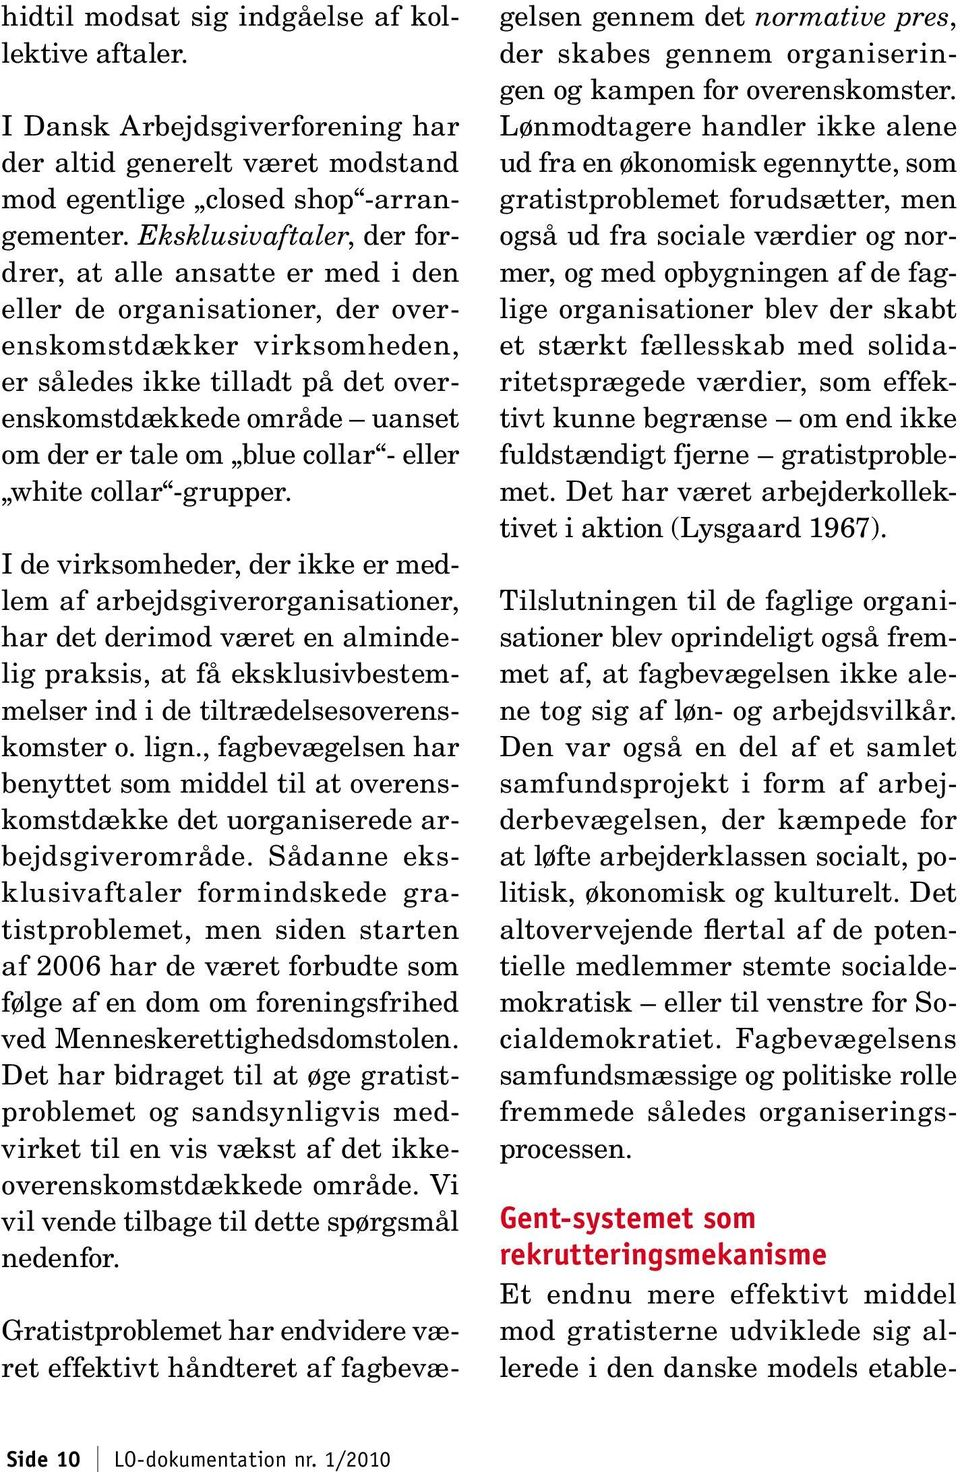 tale om blue collar - eller white collar -grupper.